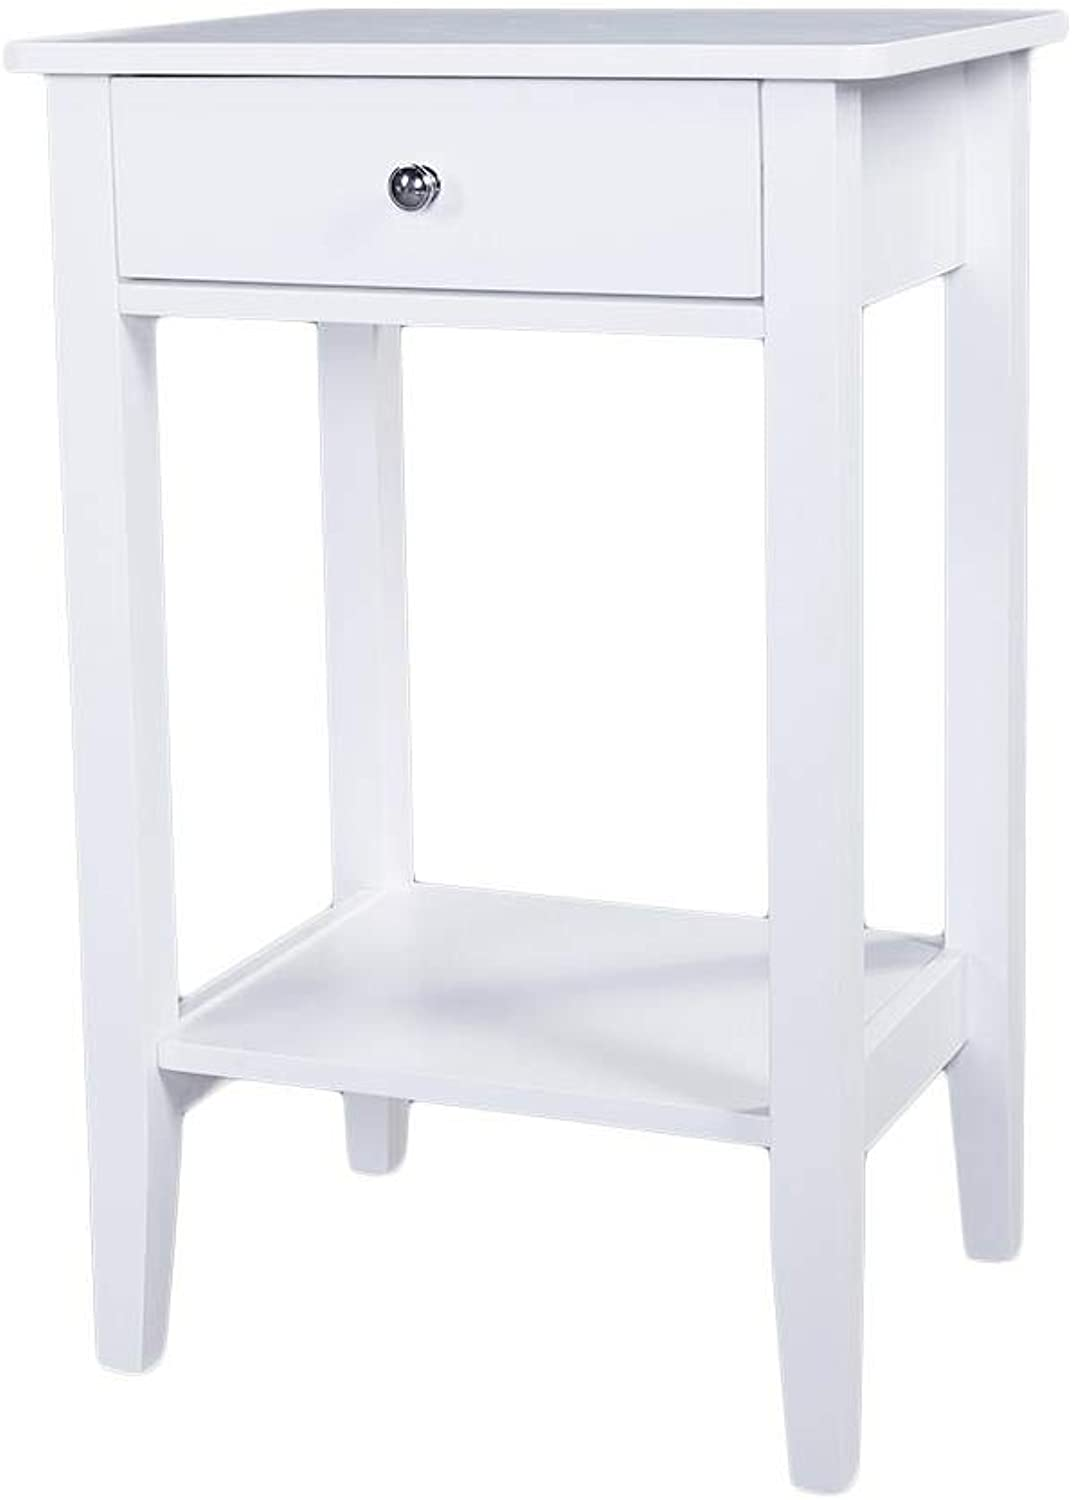 Ktaxon Two-Layer Bedside Table Coffee Table with Drawer White Wooden Storage Ktaxon Two-Layer Bedside Table Coffee Table with Drawer White Wooden Storage